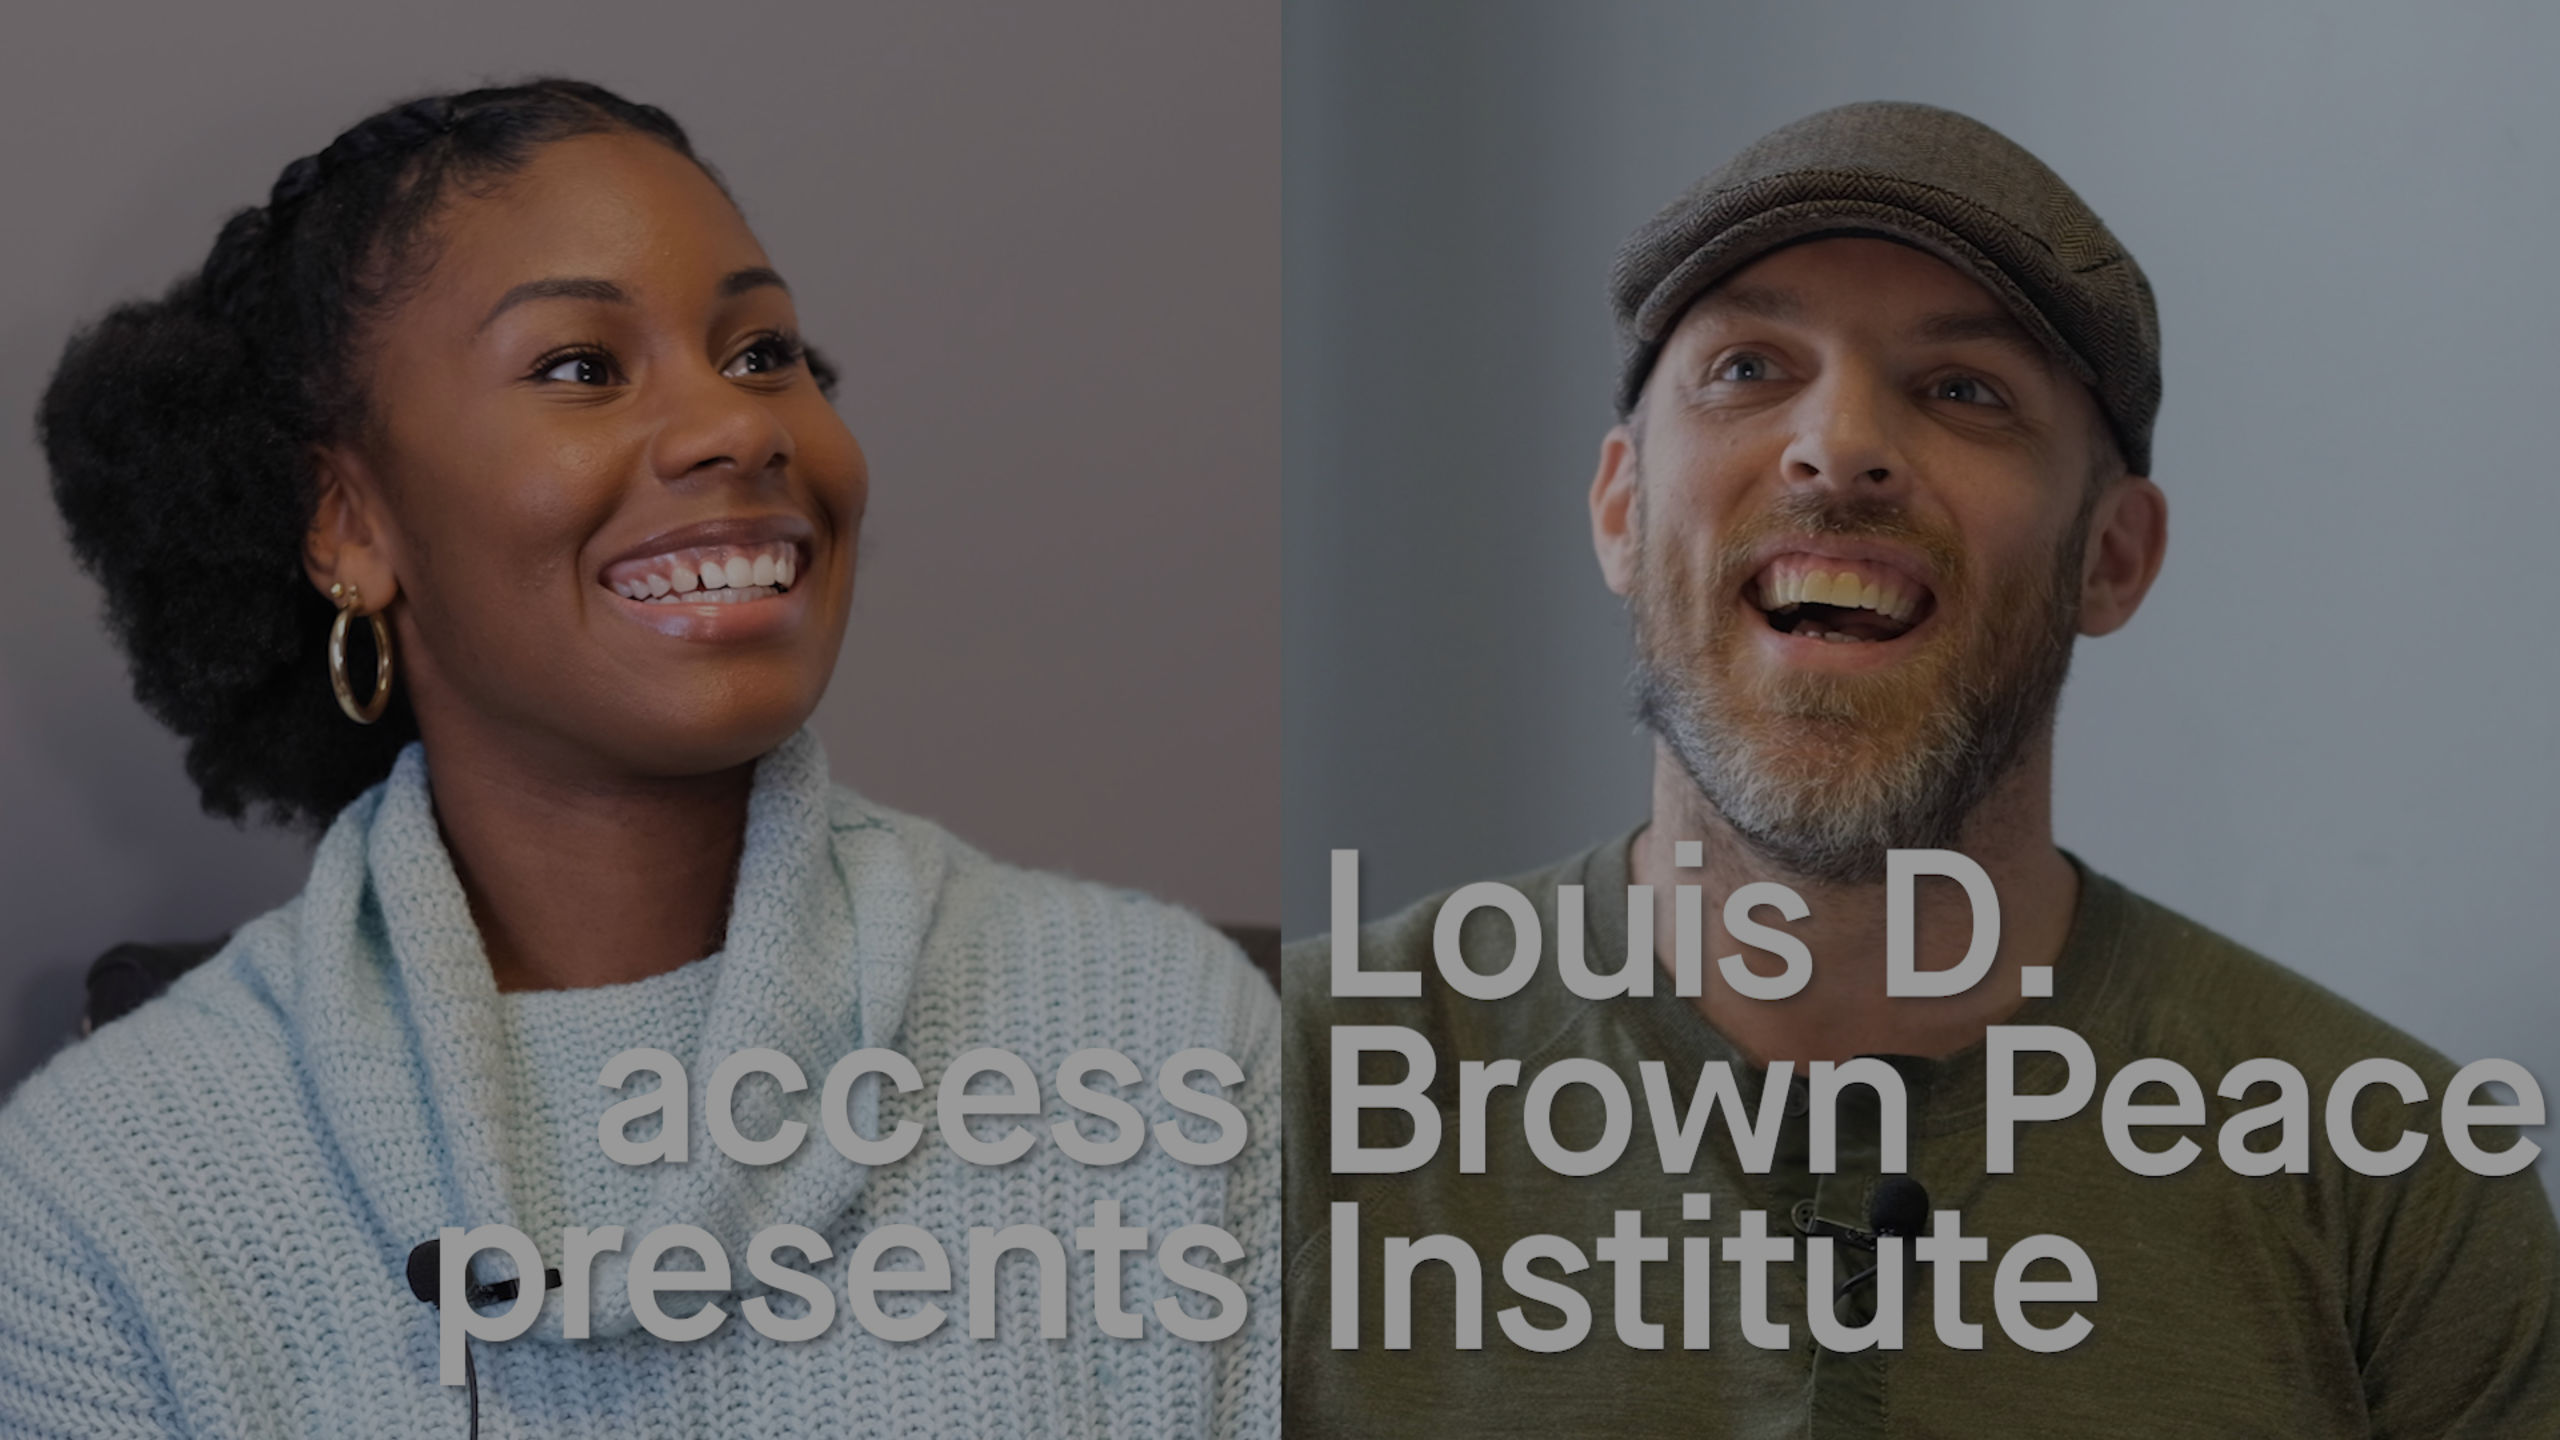 Louis D. Brown Peace Institute Interview